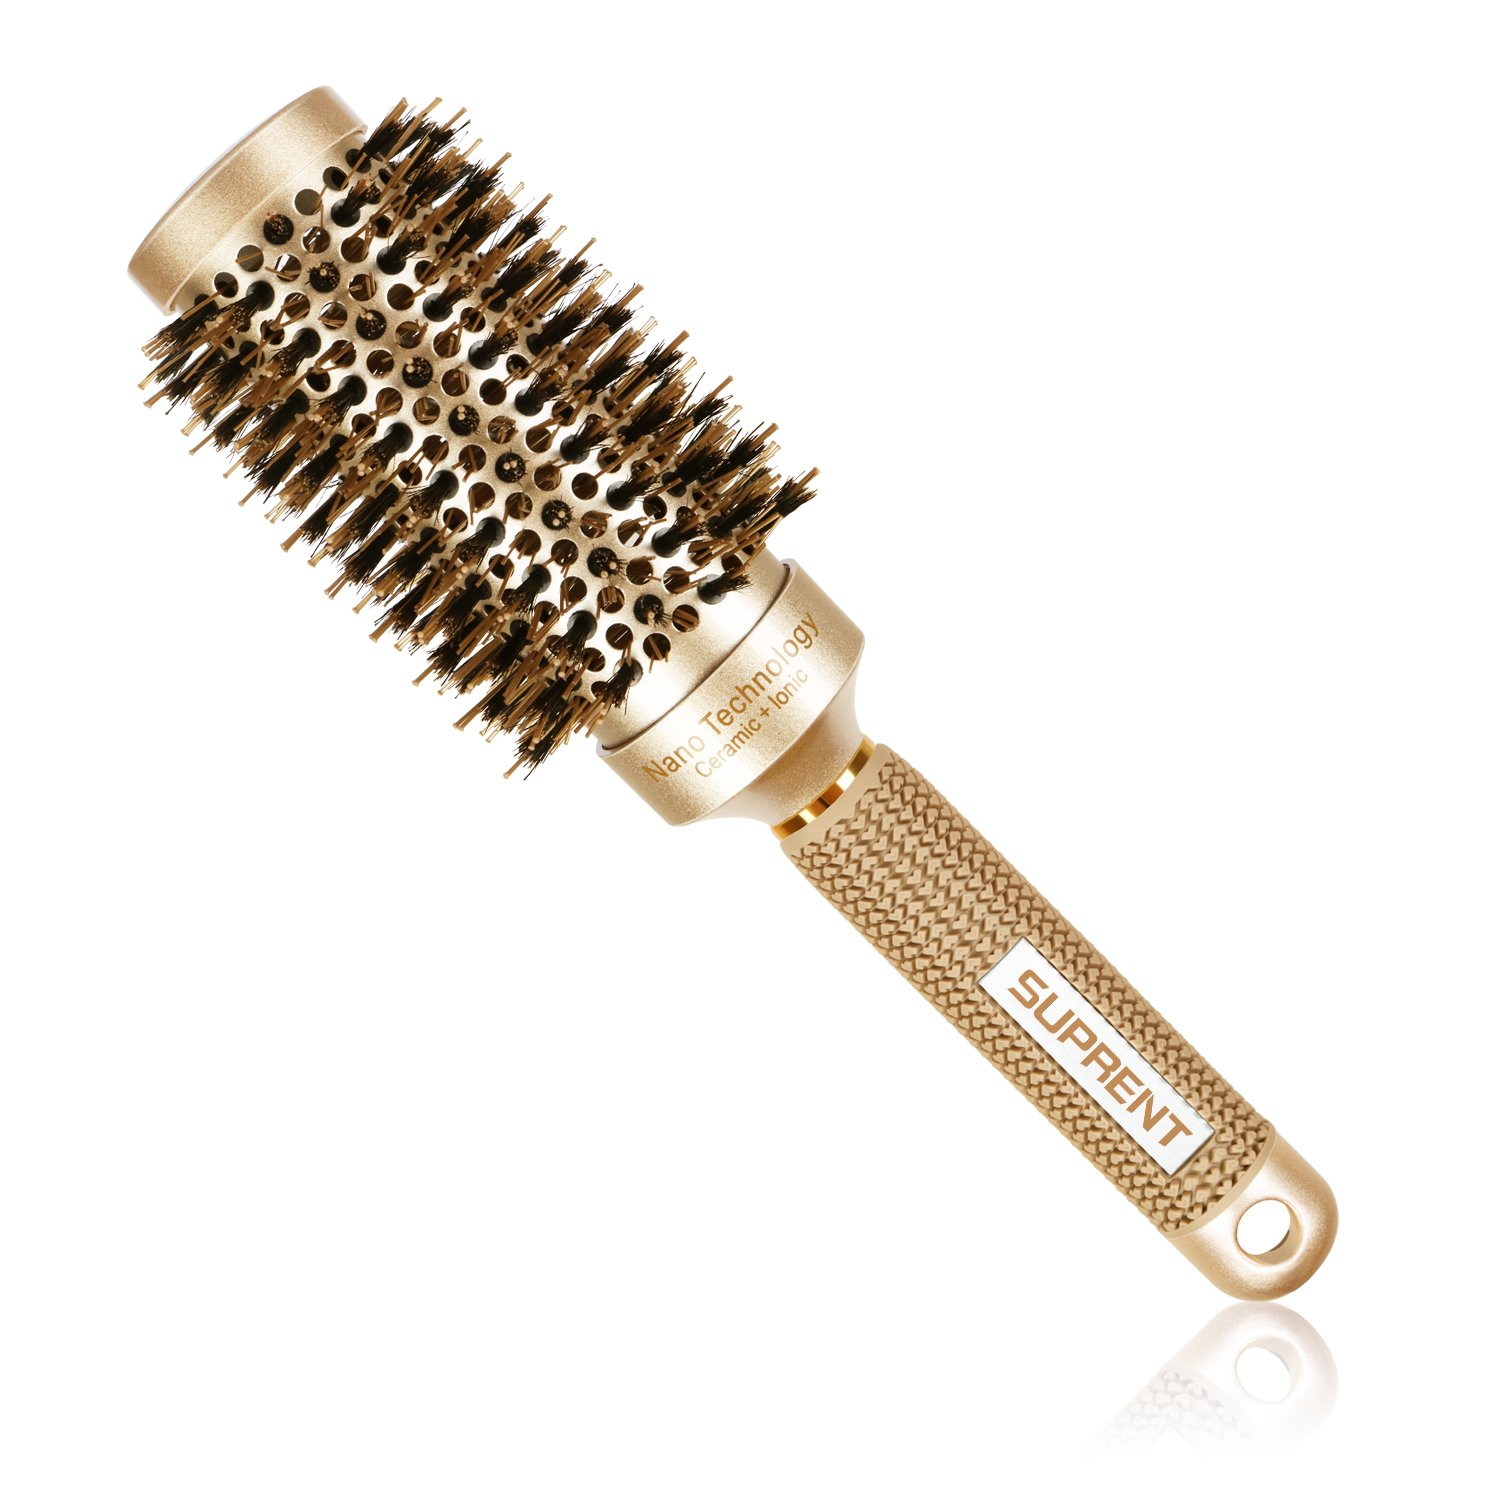 [Upgraded] SUPRENT Blowout Nano Thermic Ceramic & Ionic Round Barrel Hair Brush with Boar Bristle, Best Roller Hairbrush for Blow Drying, Curling&Straightening, Perfect Volume&Shine (Barrel 1.7 Inch)